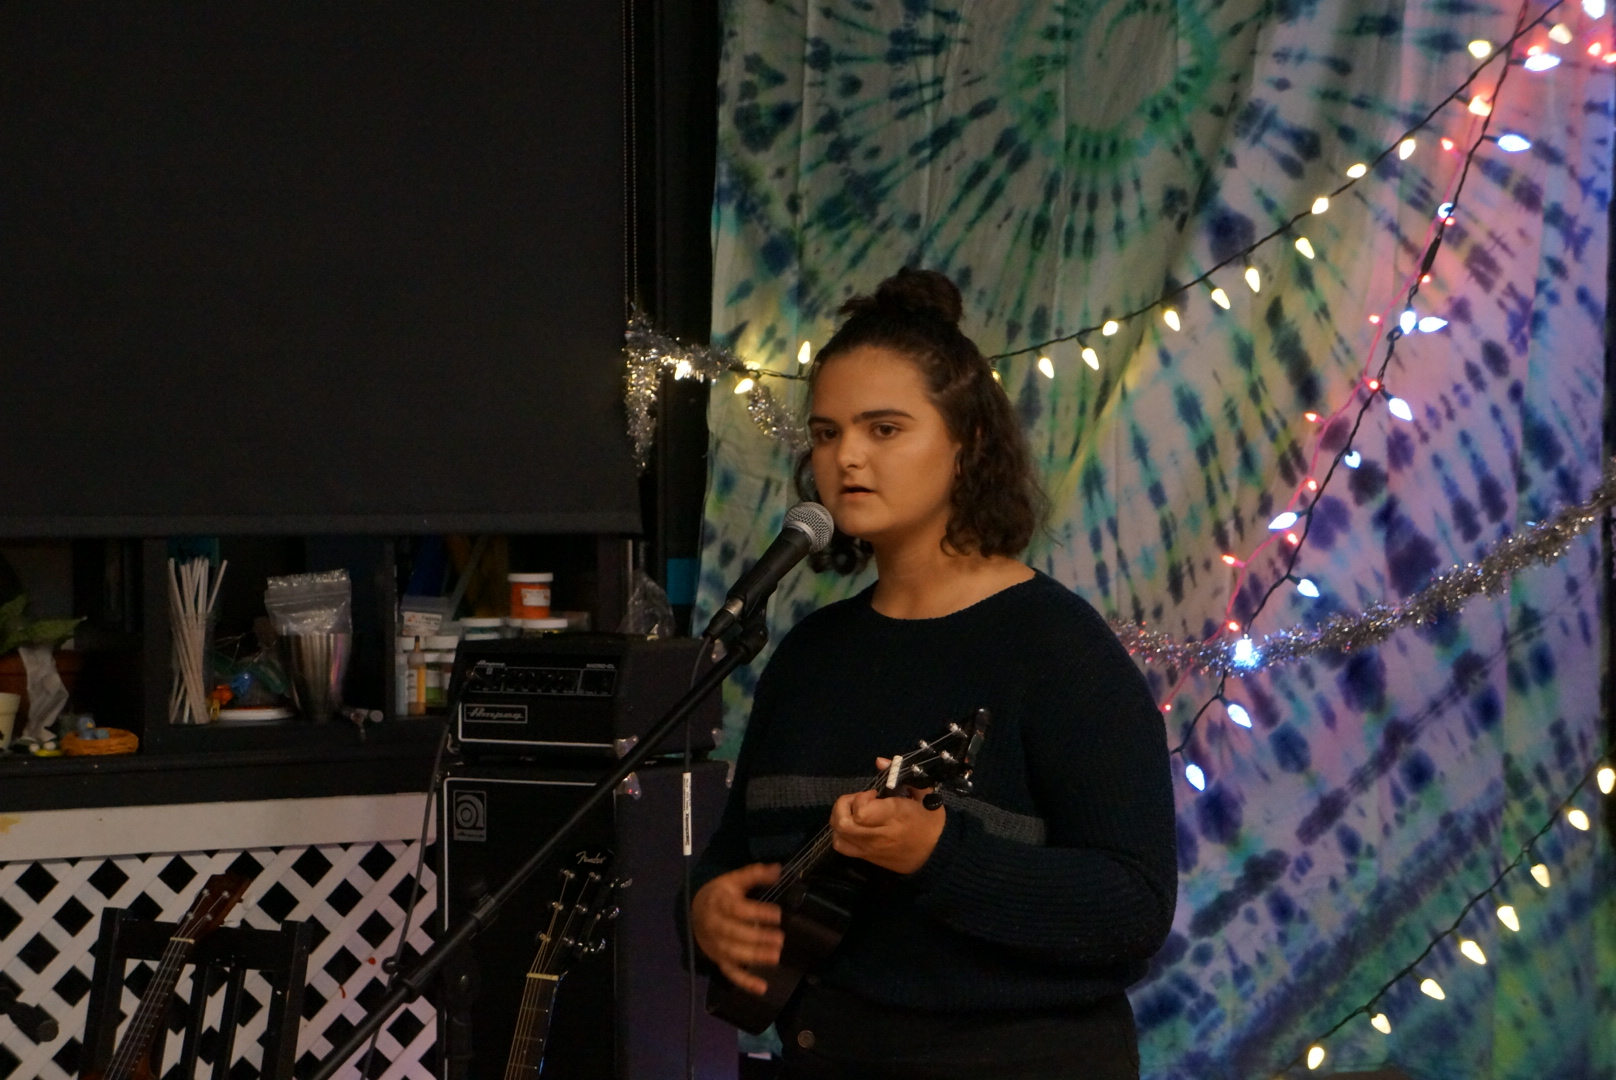 Katelyn Sansotta performed What a Wonderful World by Louis Armstrong